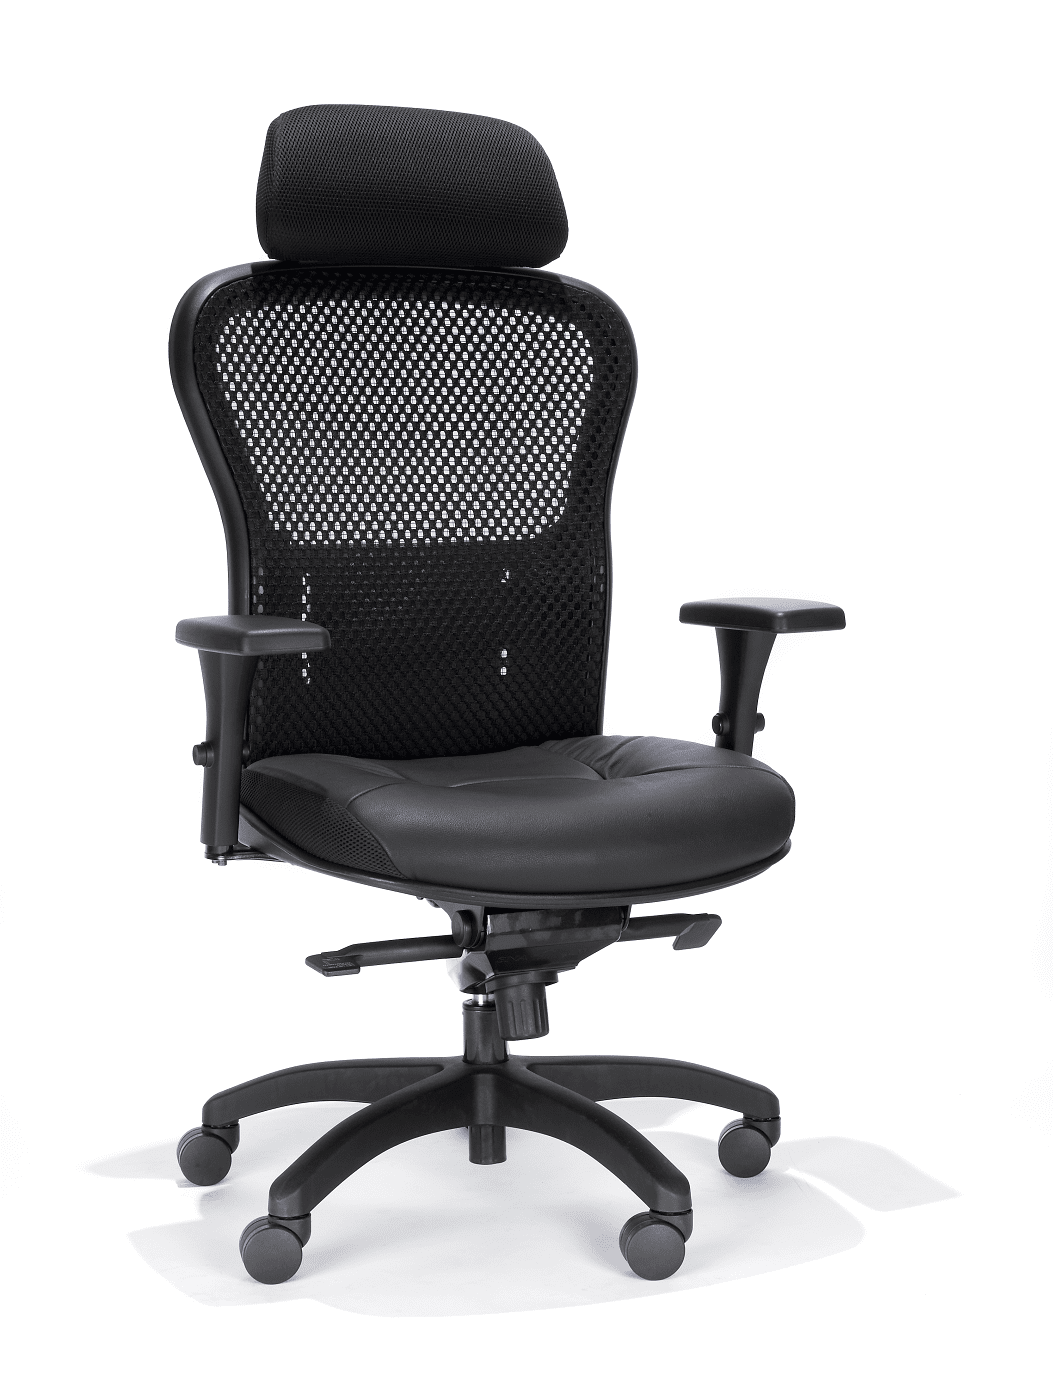 RFM Executive Mesh Chair. Mesh Seat & Back. With Headrest #162Q-68HR.